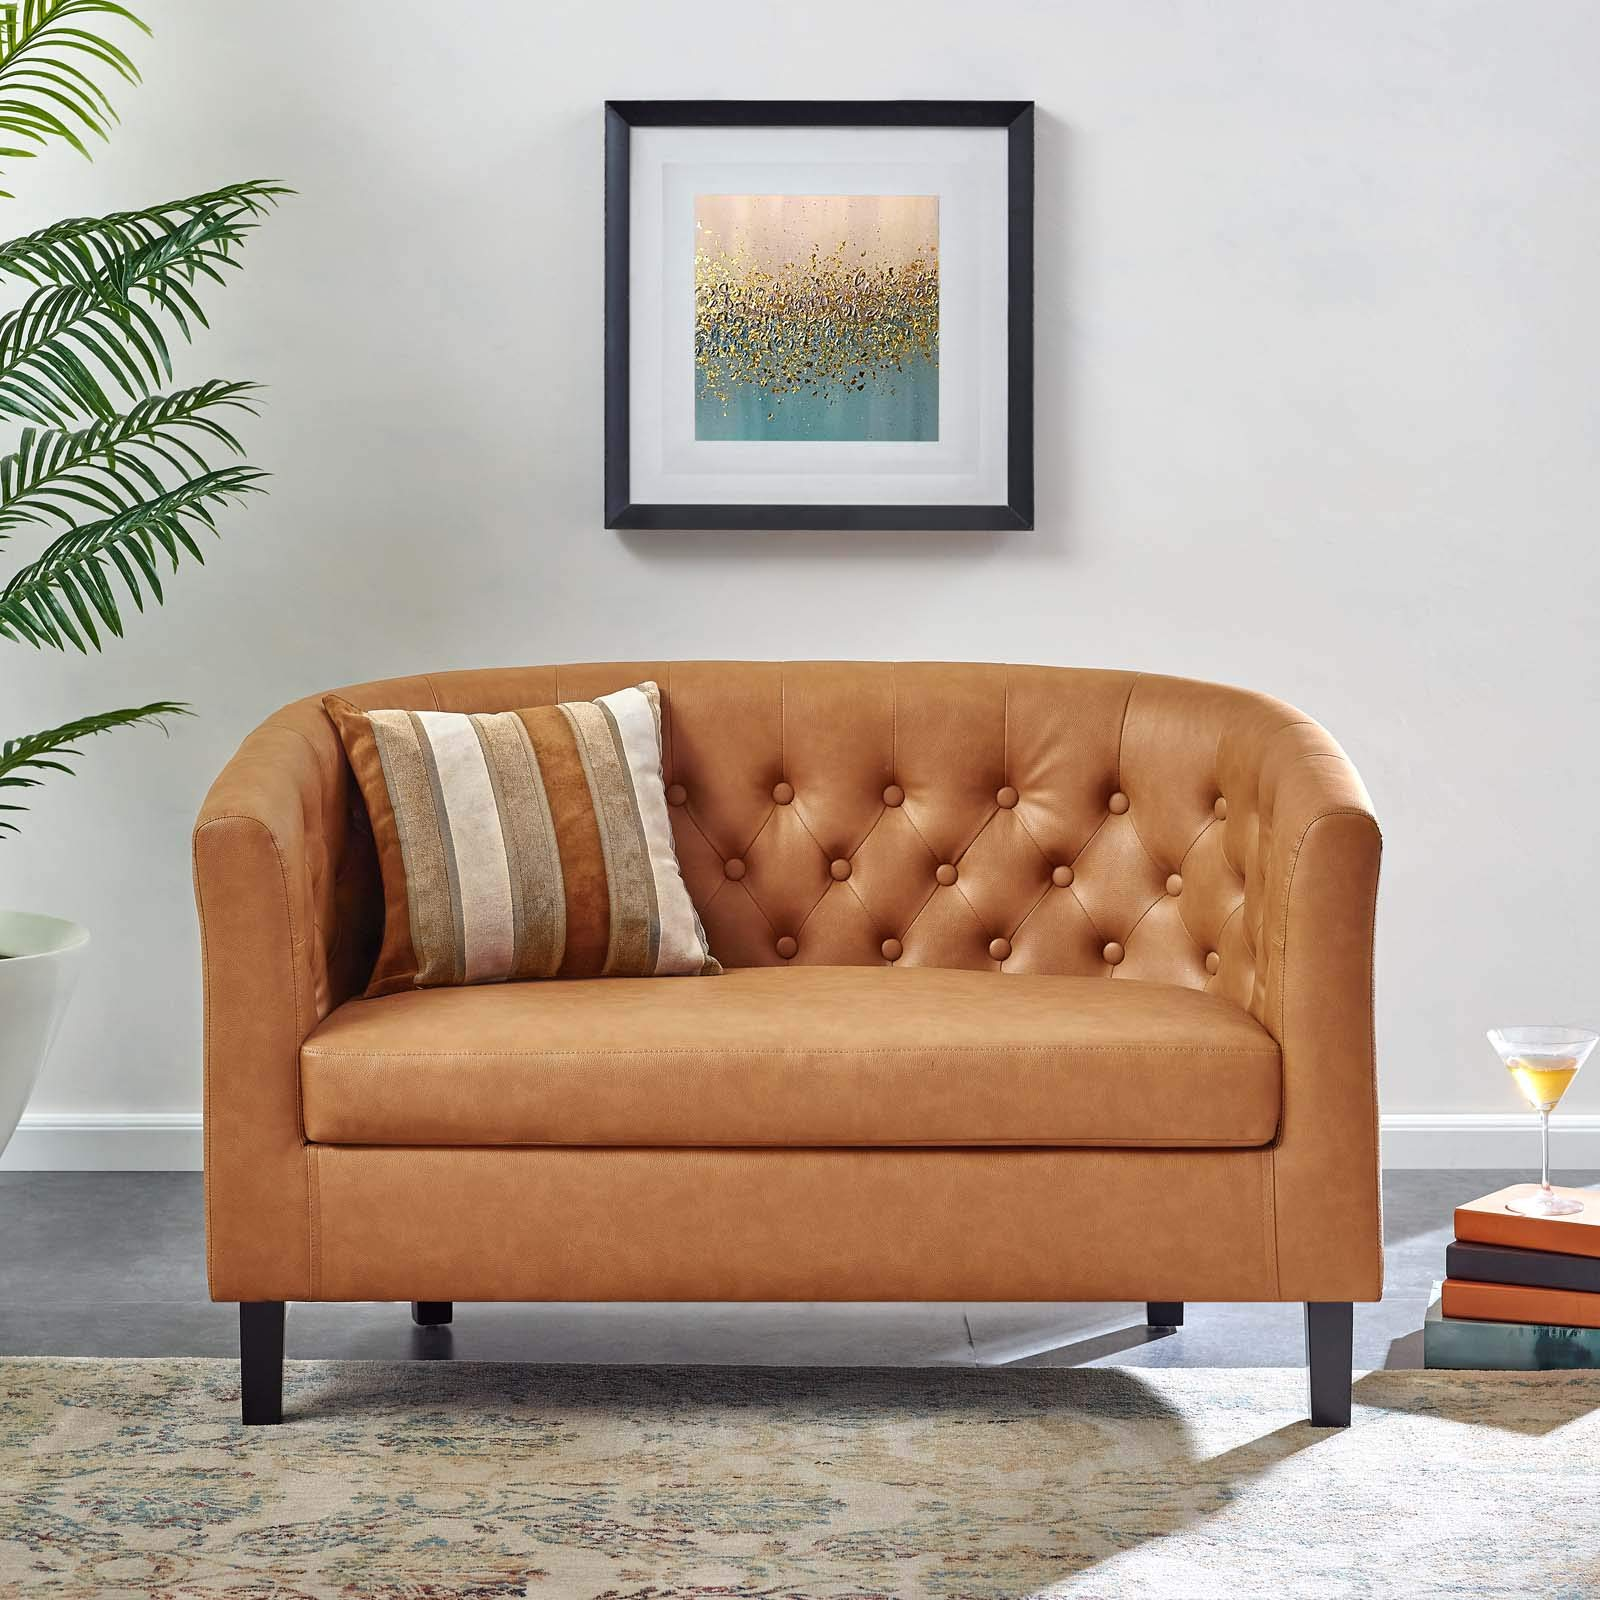 Modway Prospect Upholstered Contemporary Modern Loveseat In Tan Faux Leather by Modway